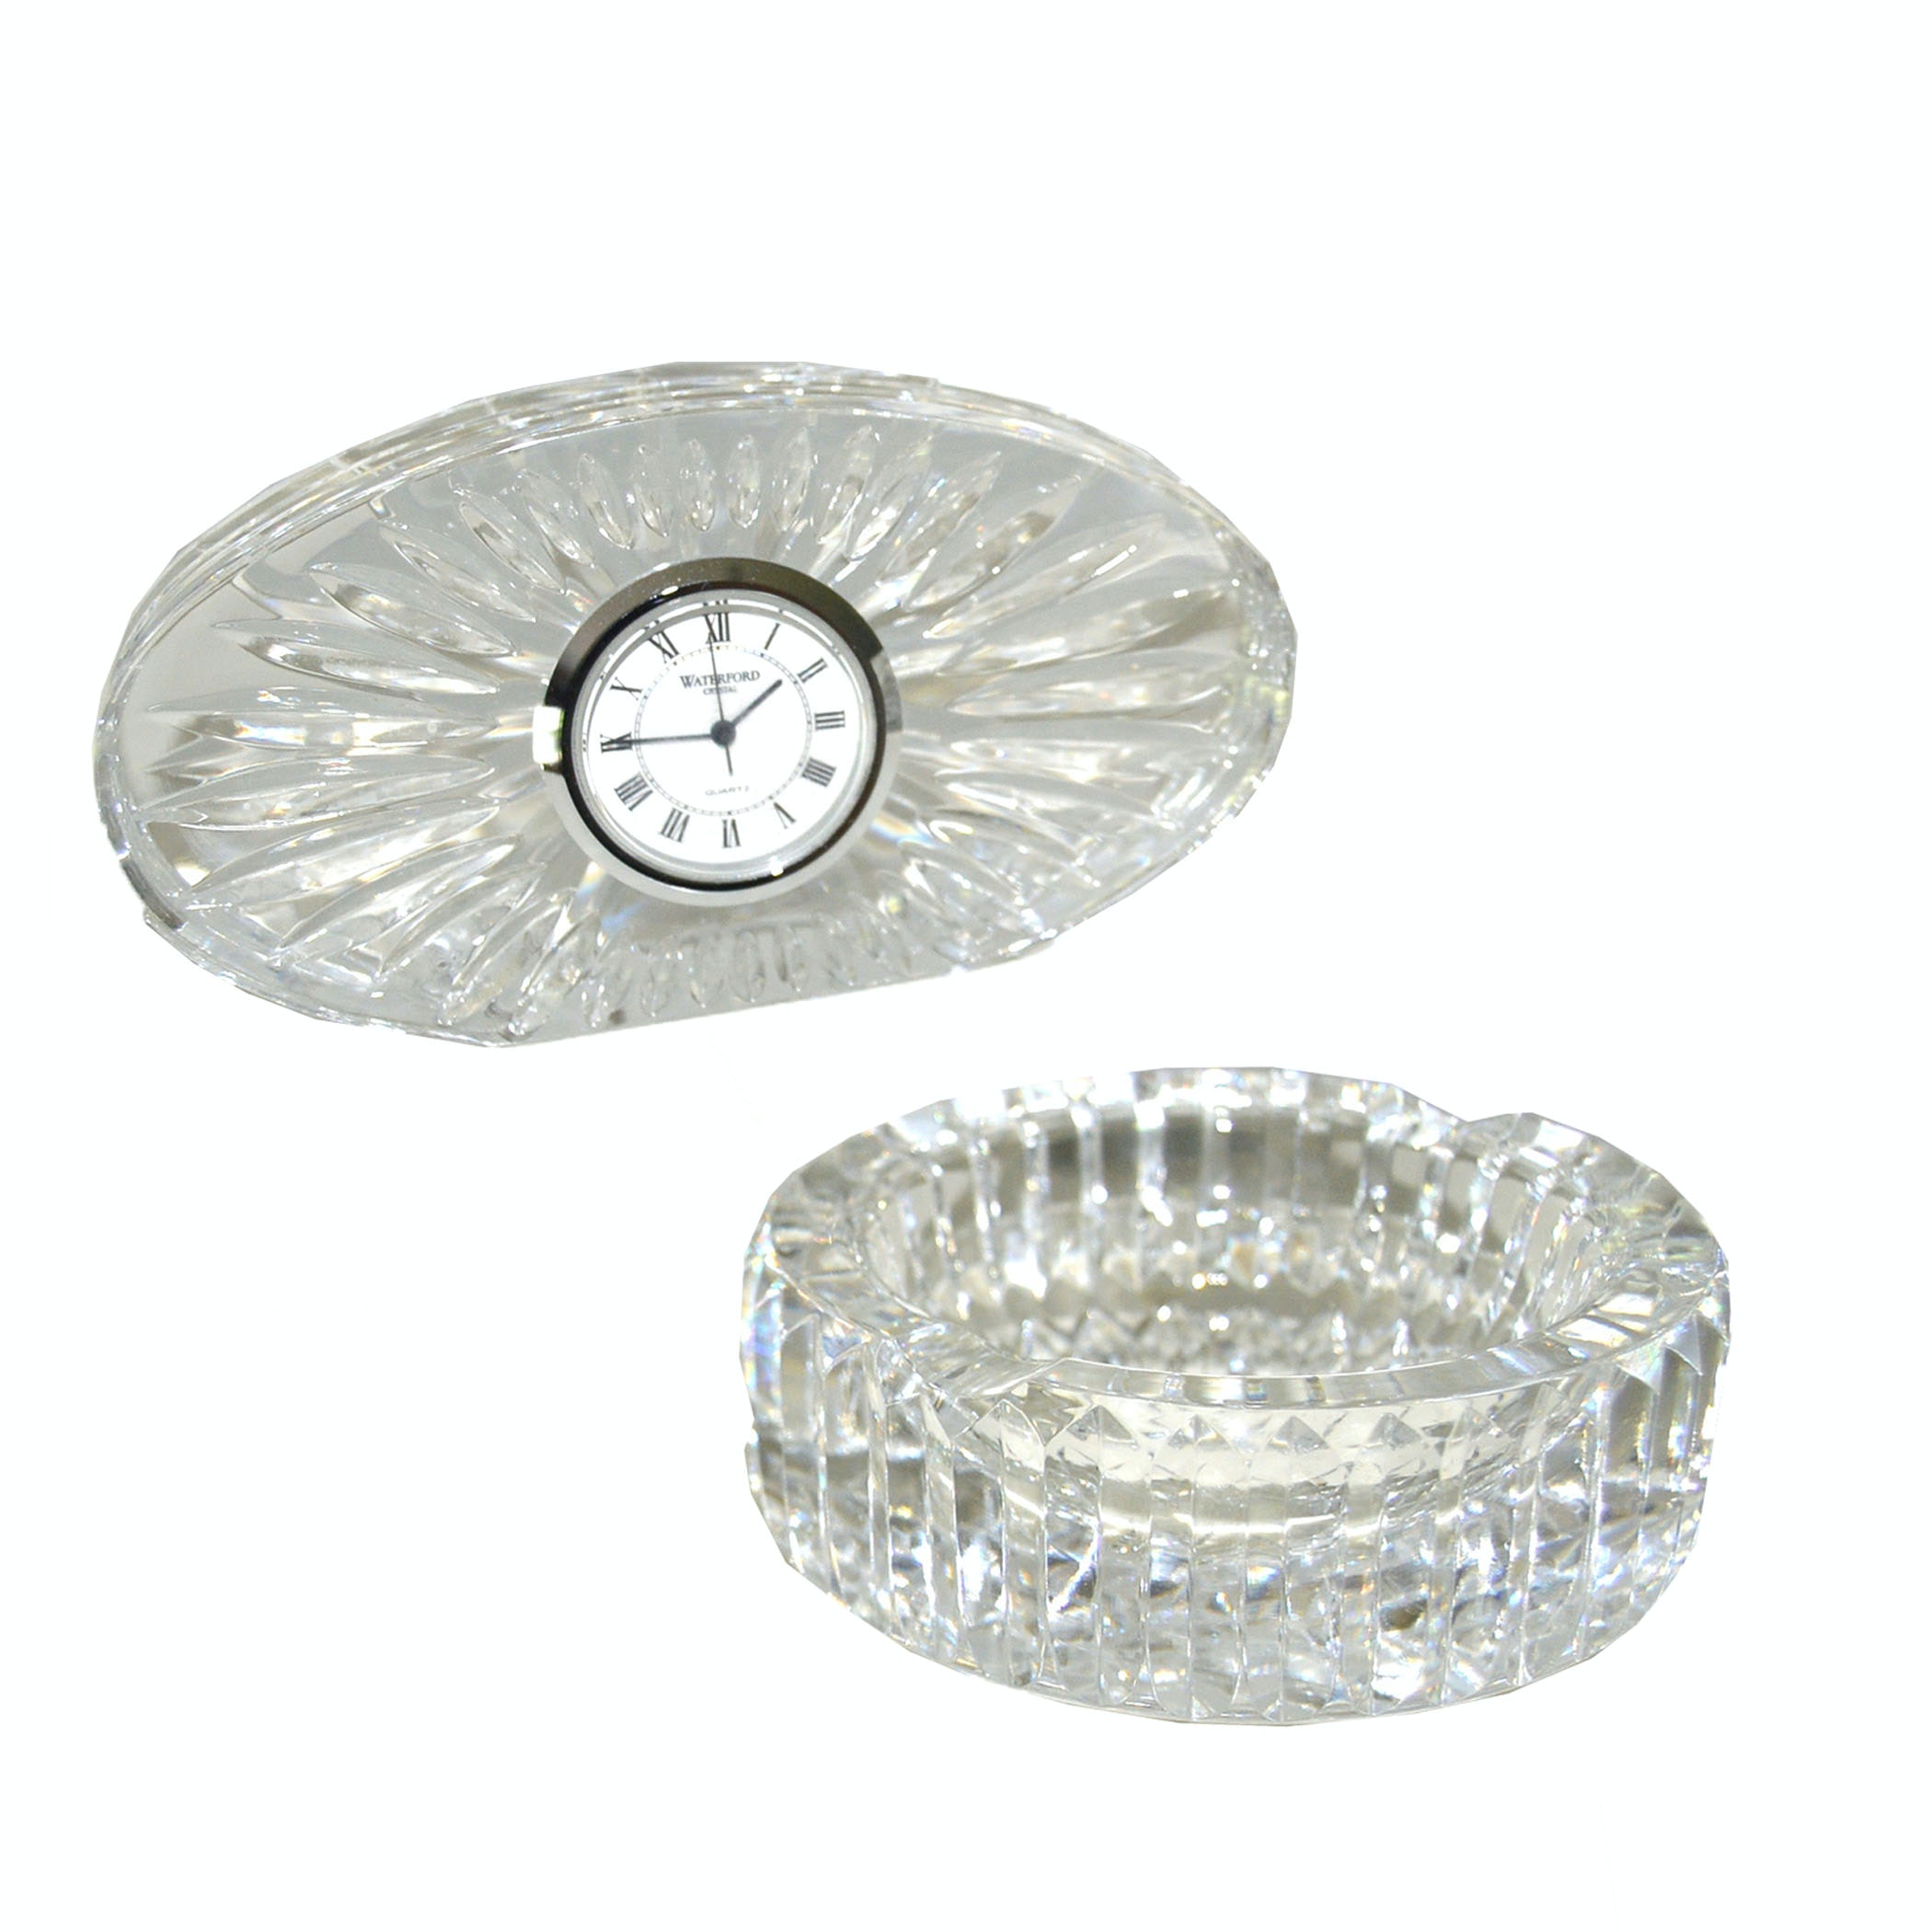 Waterford Crystal Clock and Ash Receiver